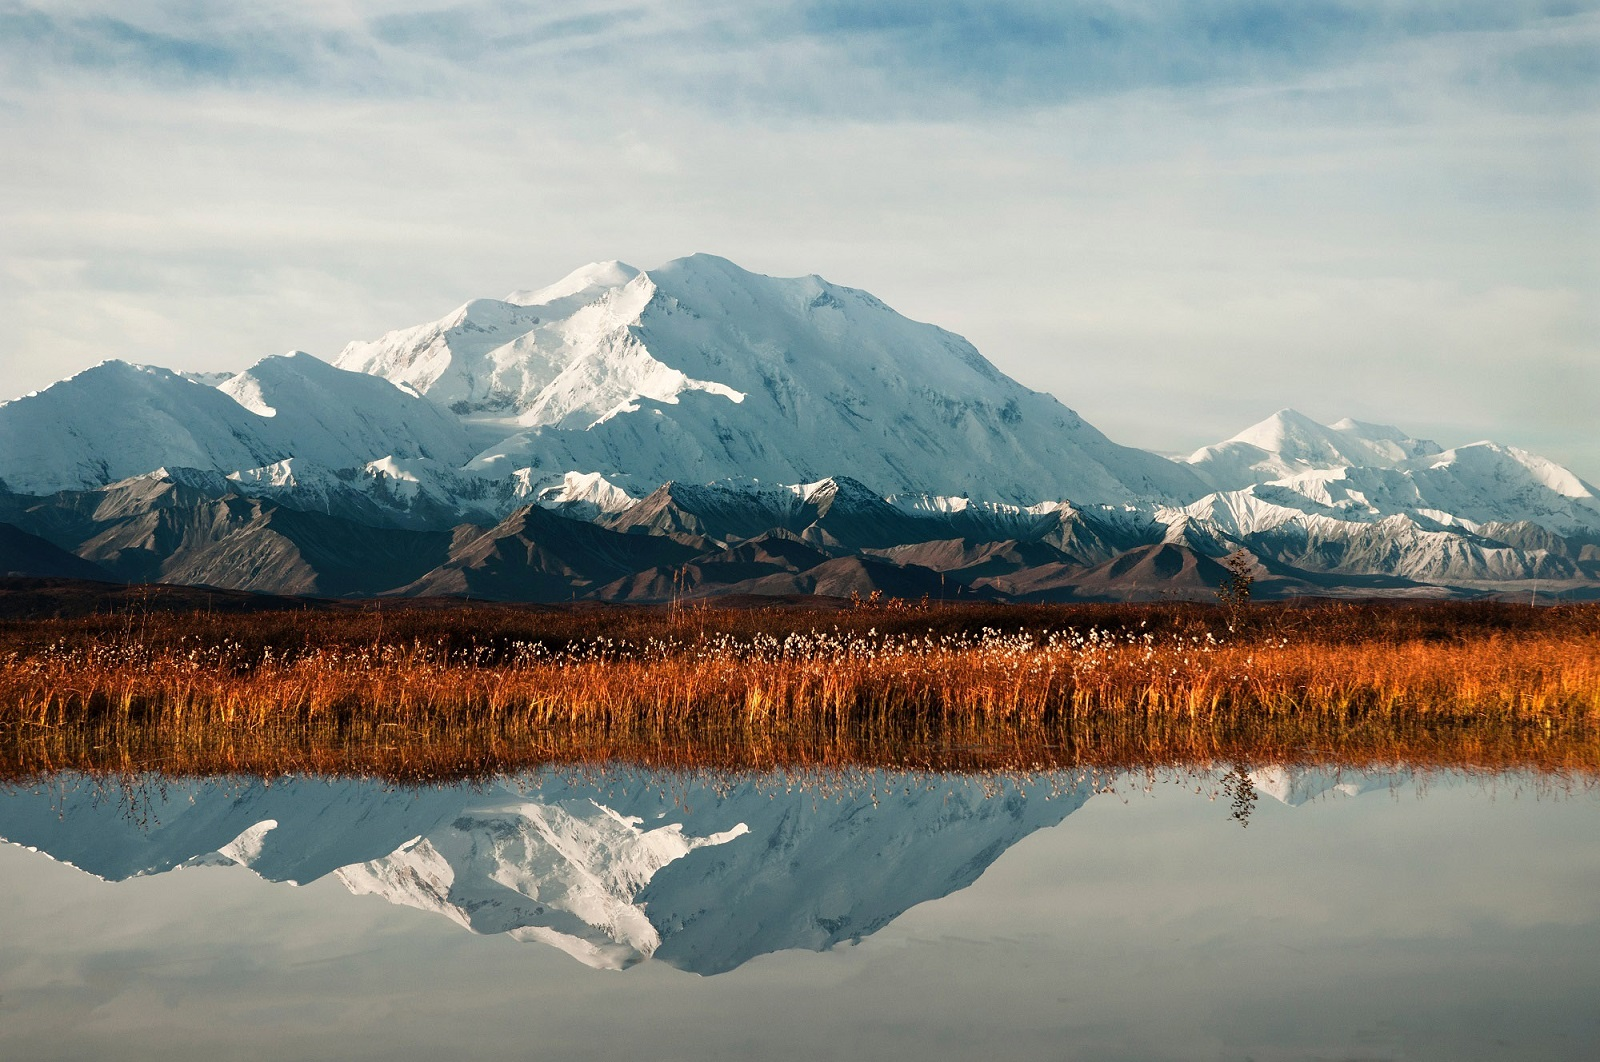 view of mountains reflected in the water